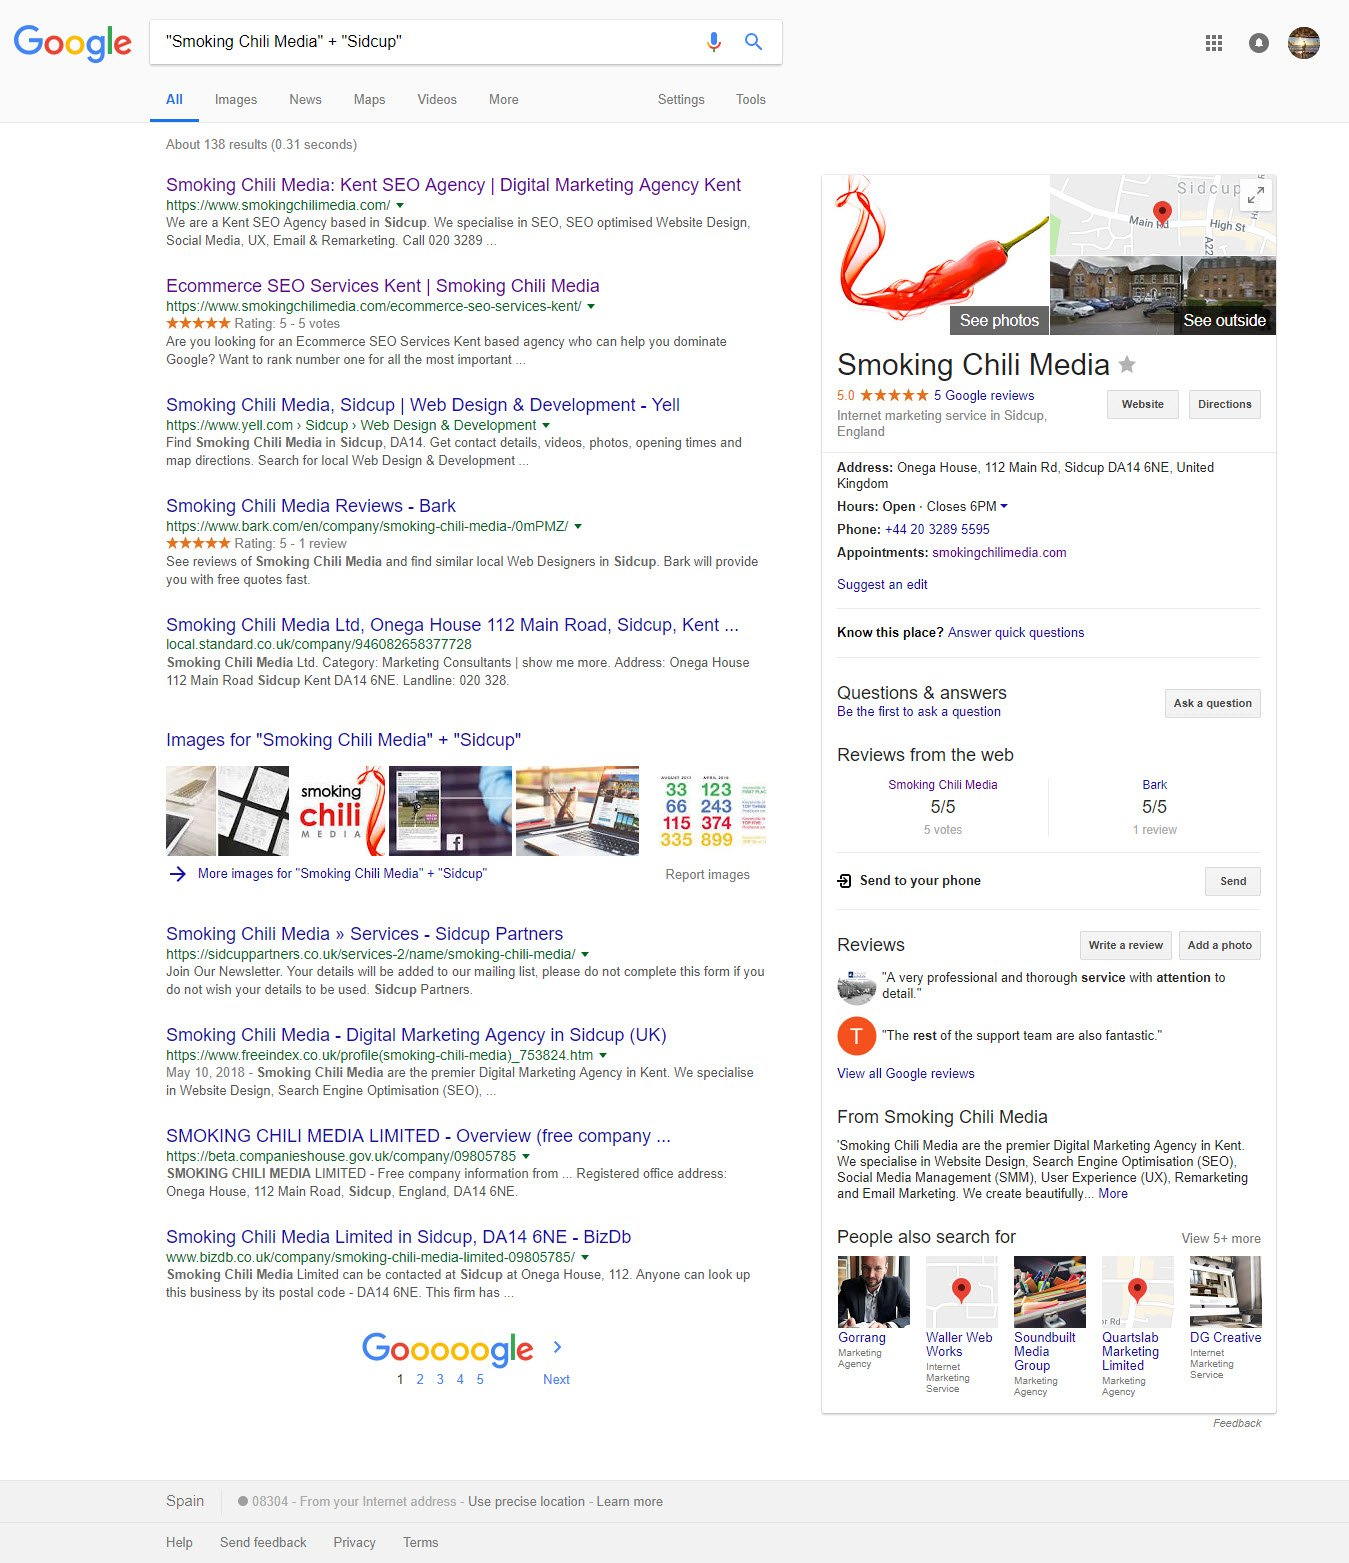 Smoking Chili Media Sidcup Google My Business Knowledge Panel Result